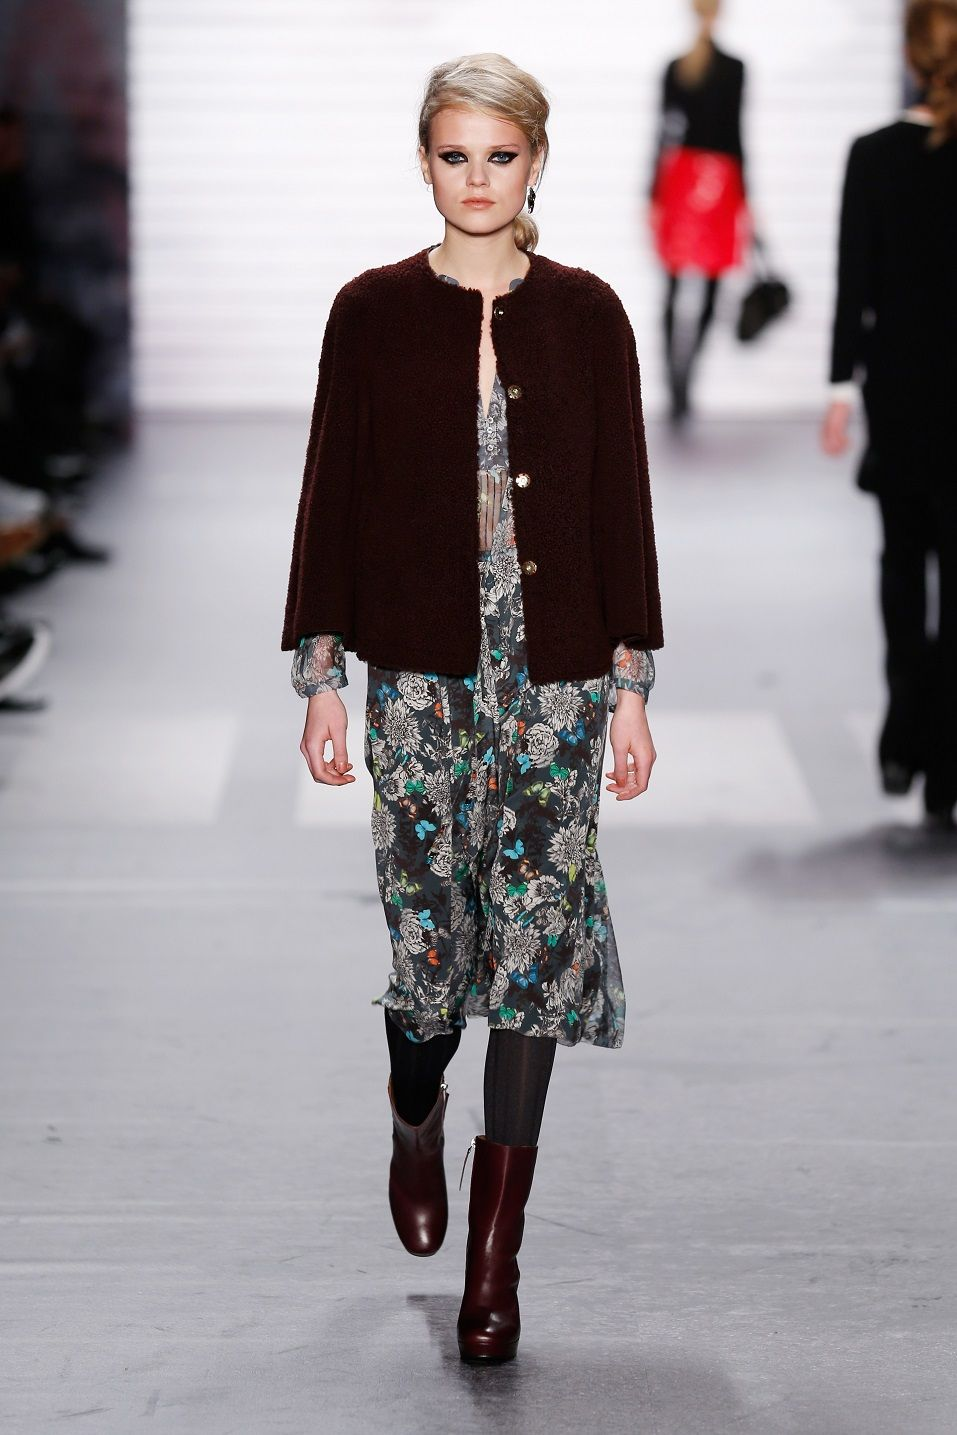 A model walks the runway at the Marc Cain show during the Mercedes-Benz Fashion Week